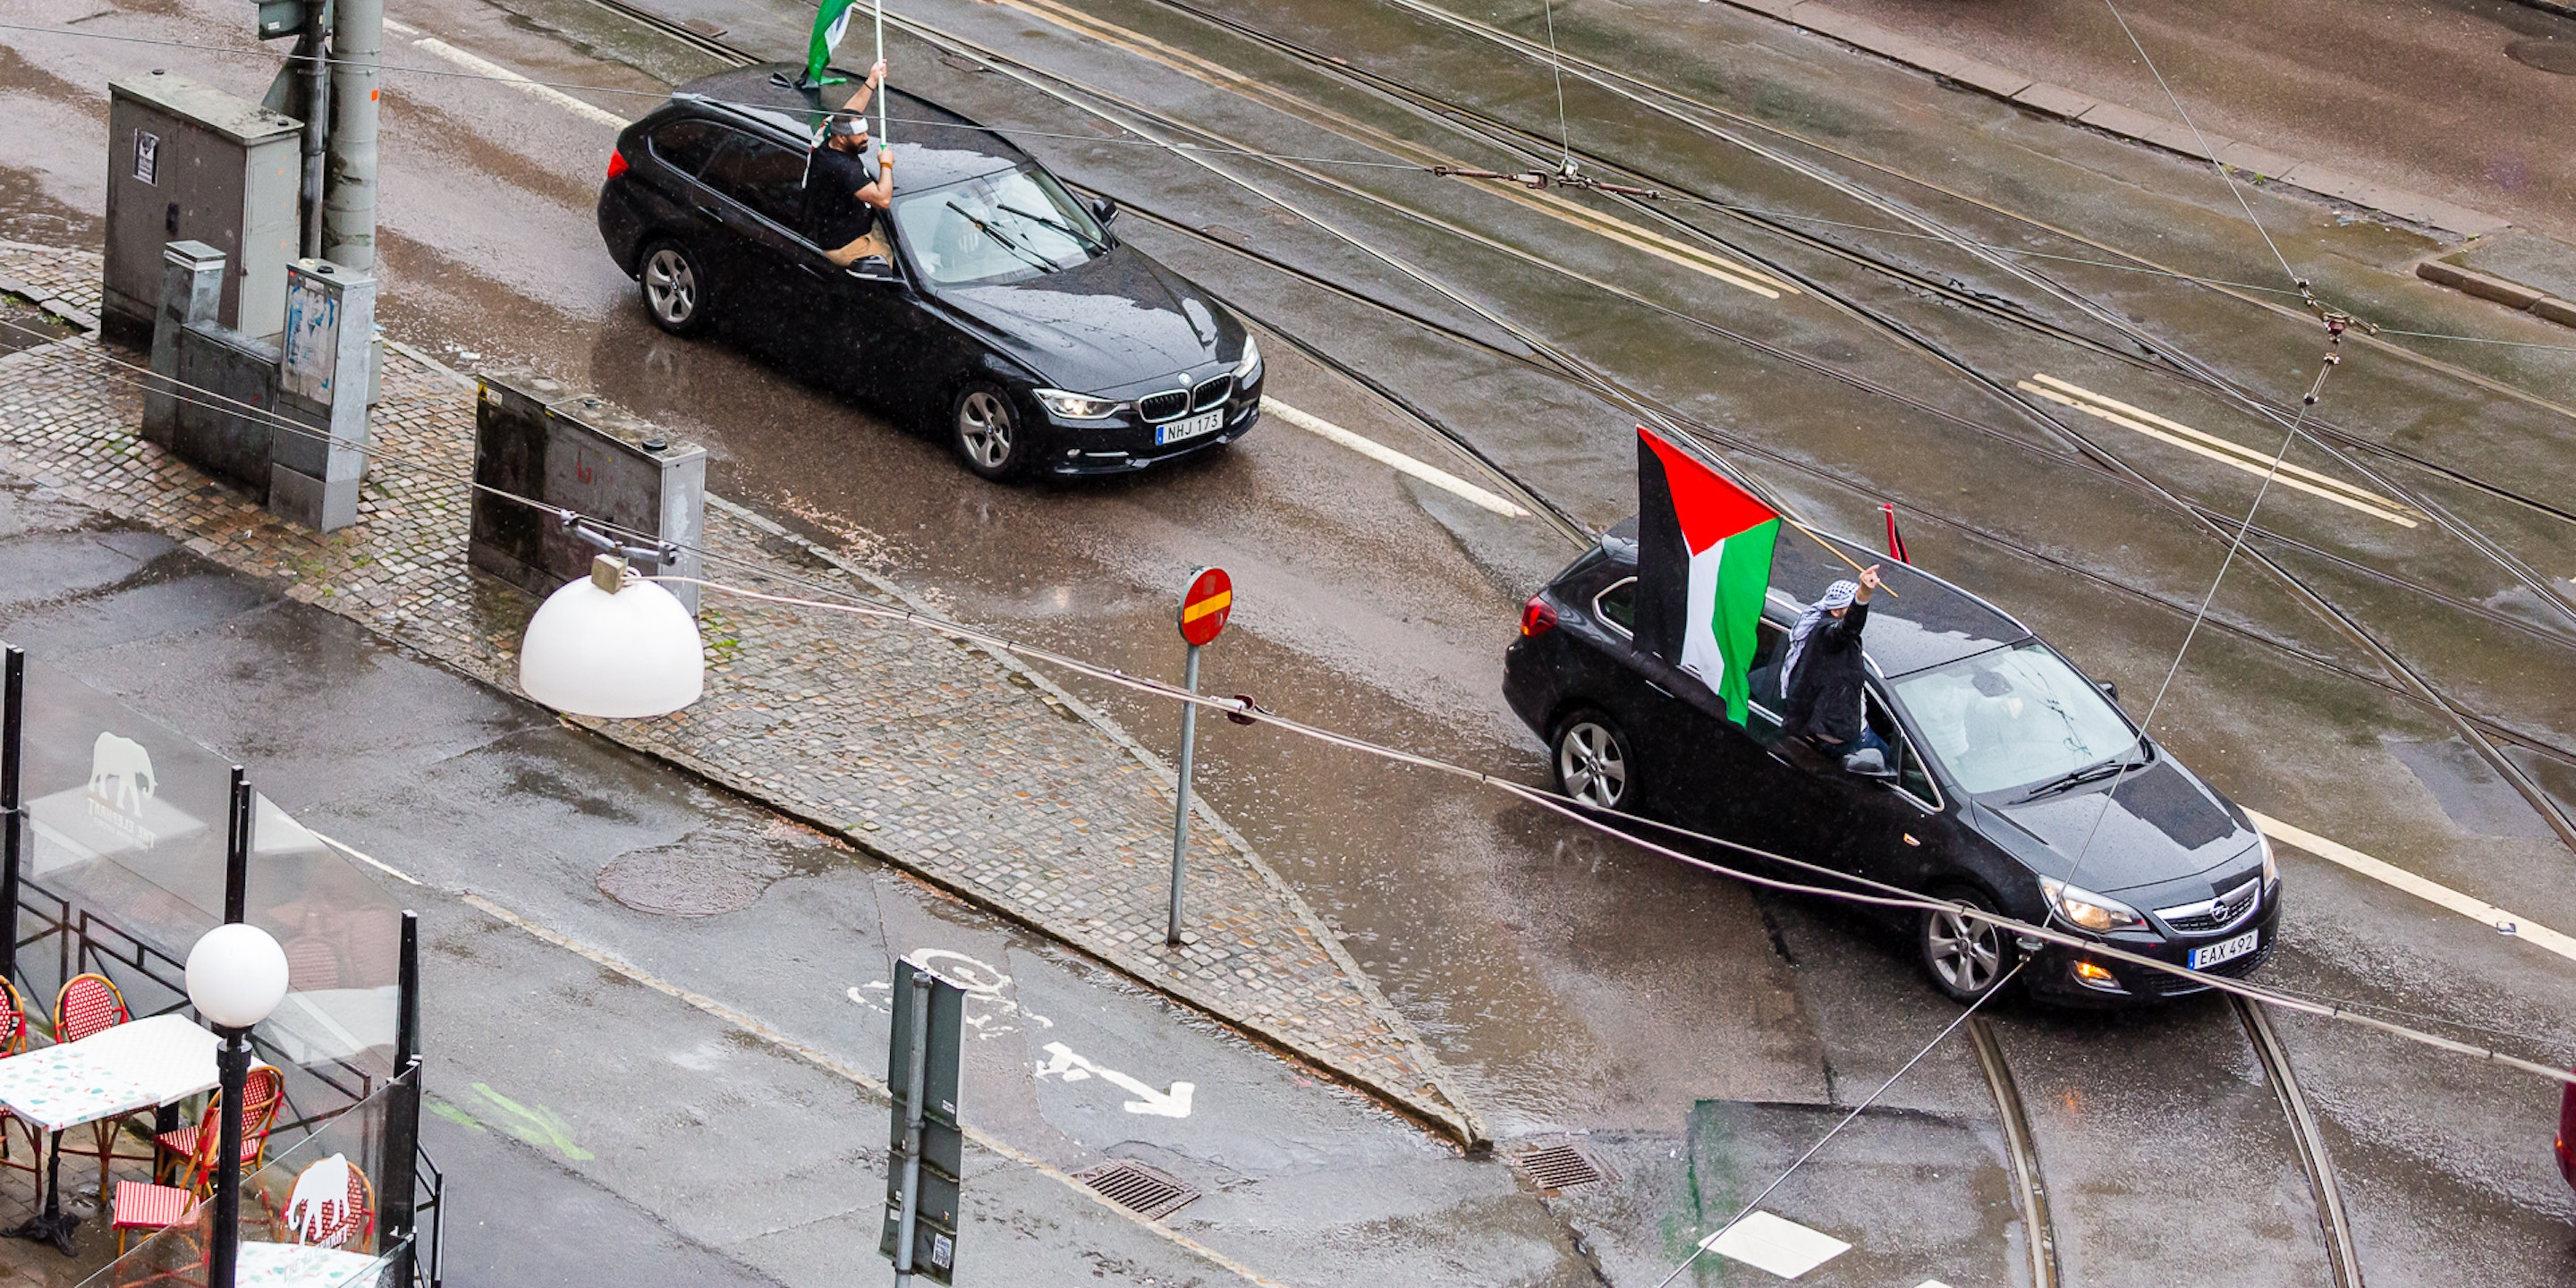 Driving protest for Palestine